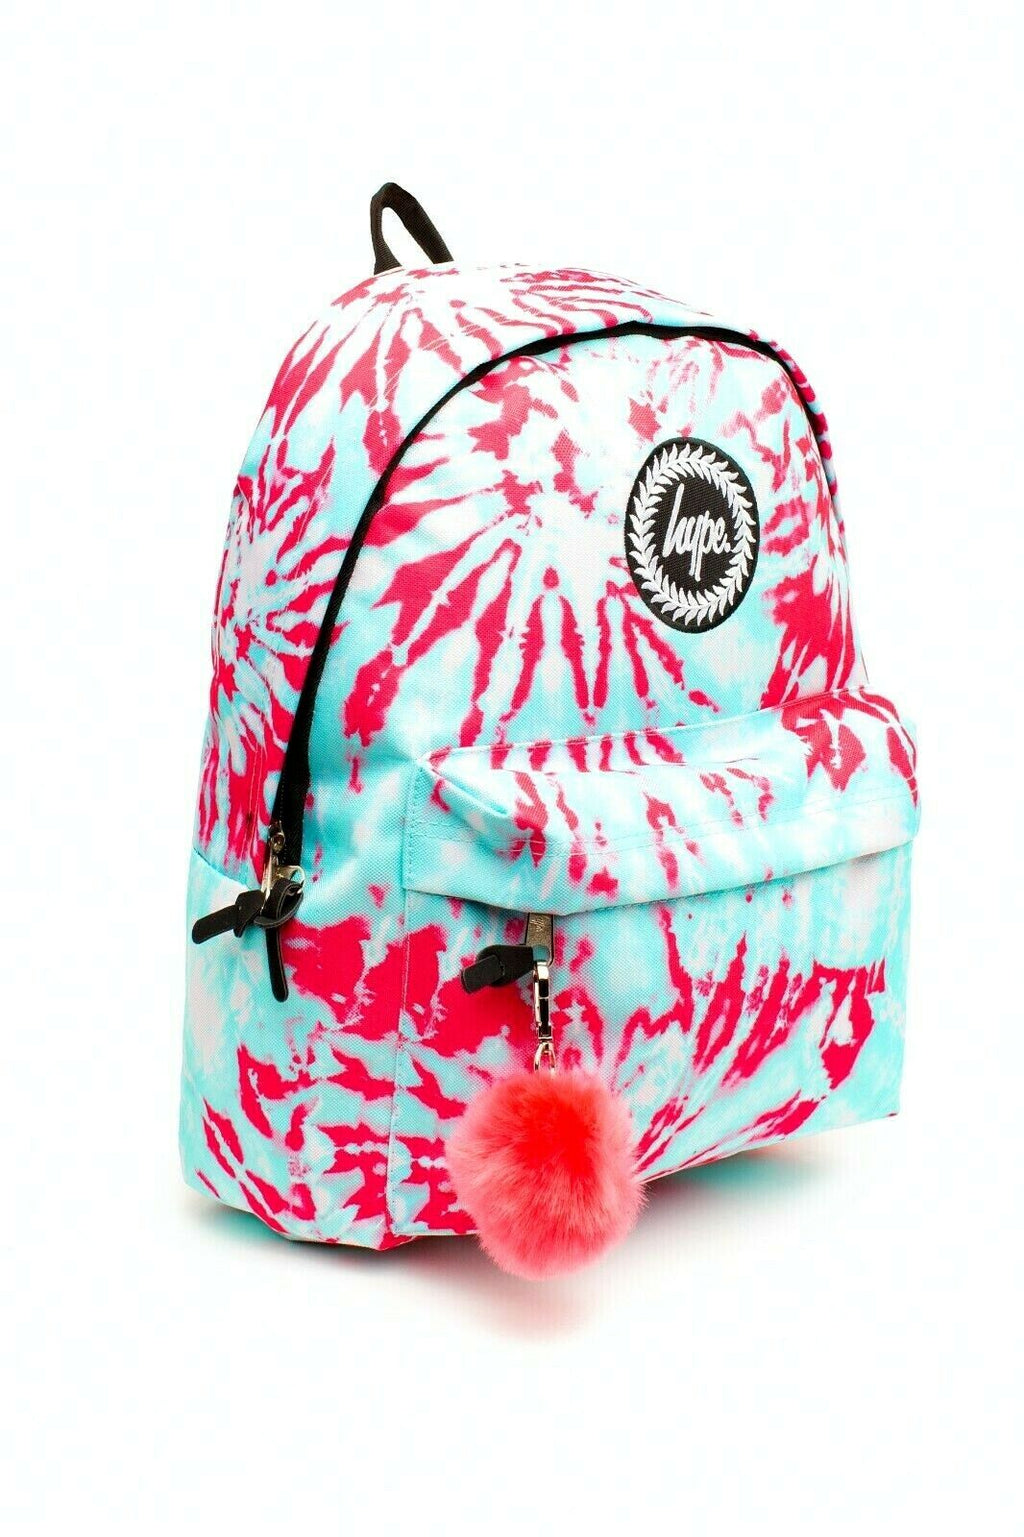 Pastel Tie Dye Backpack